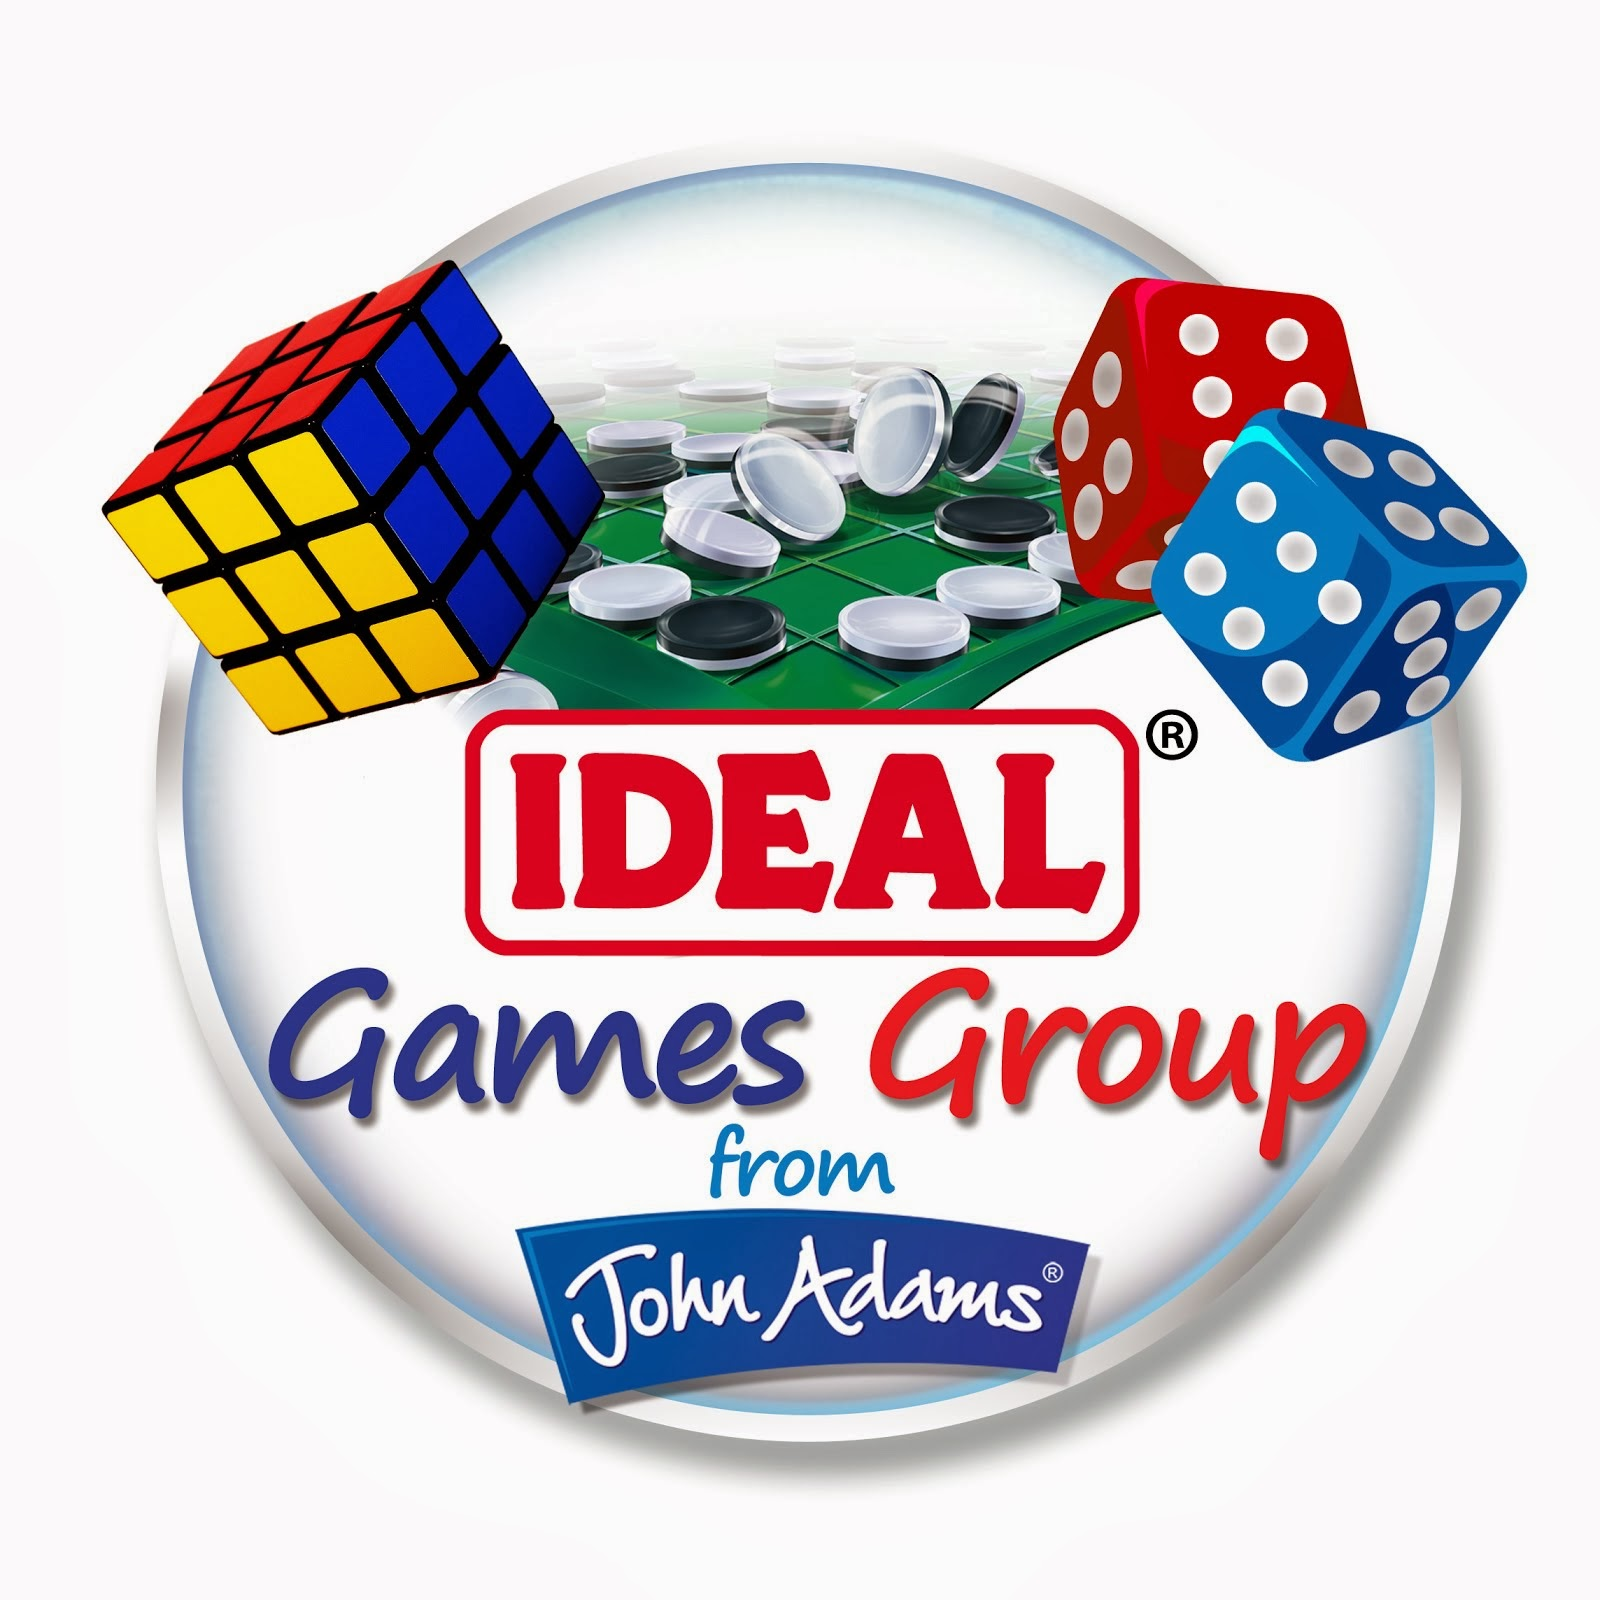 John Adams Games Group Blogger